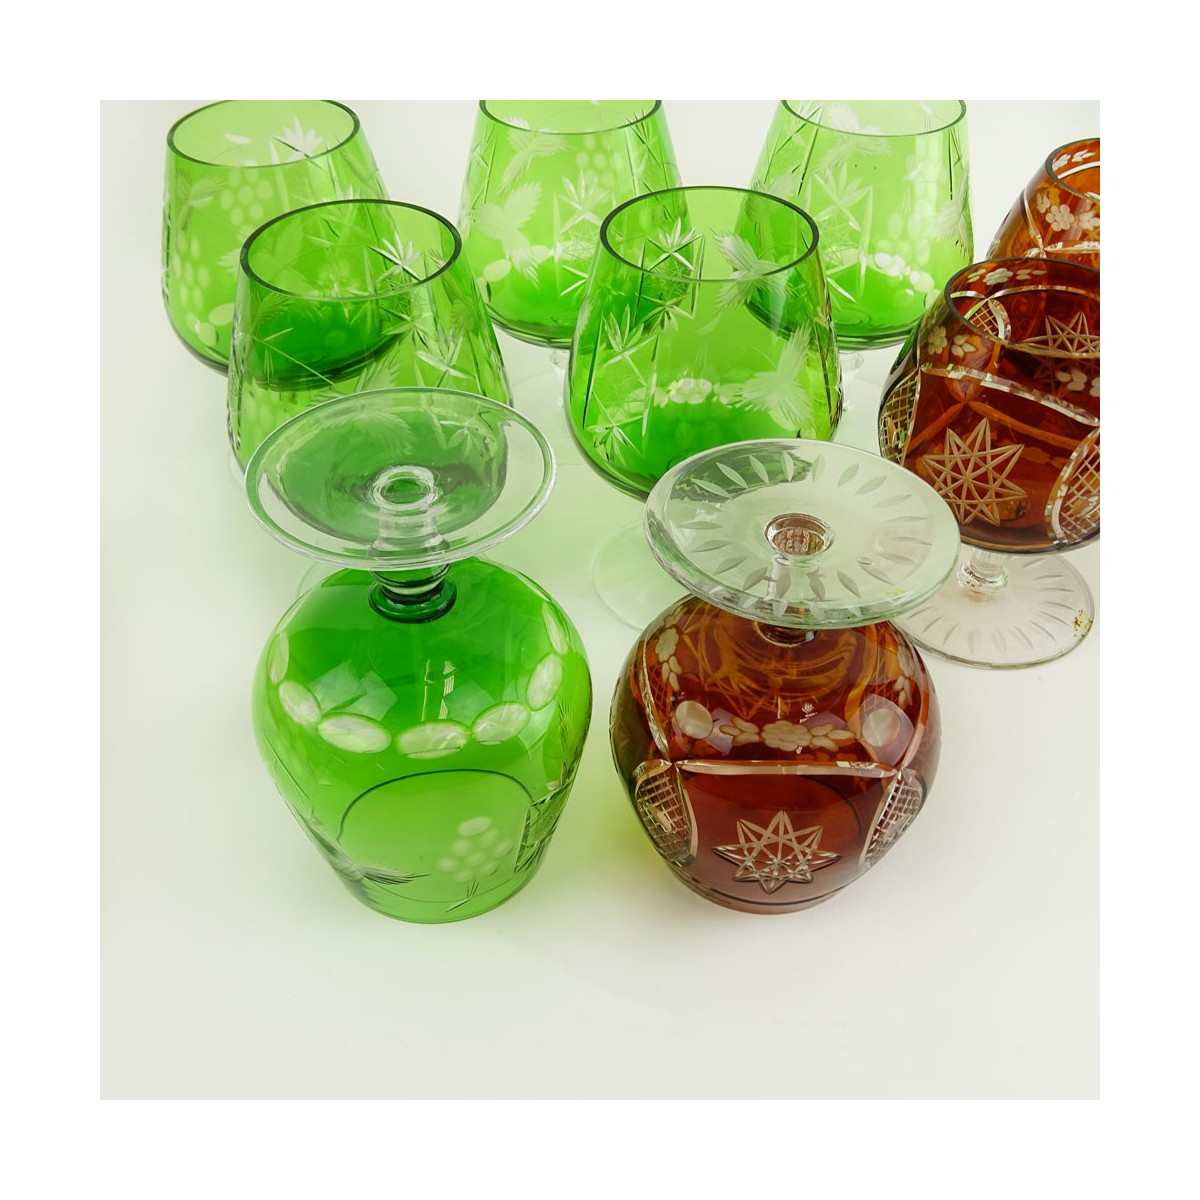 Lot of 9 Bohemian Cut Glass Brandy glasses in Green and Deep Orange. Various stems. Measure 4-1/2""